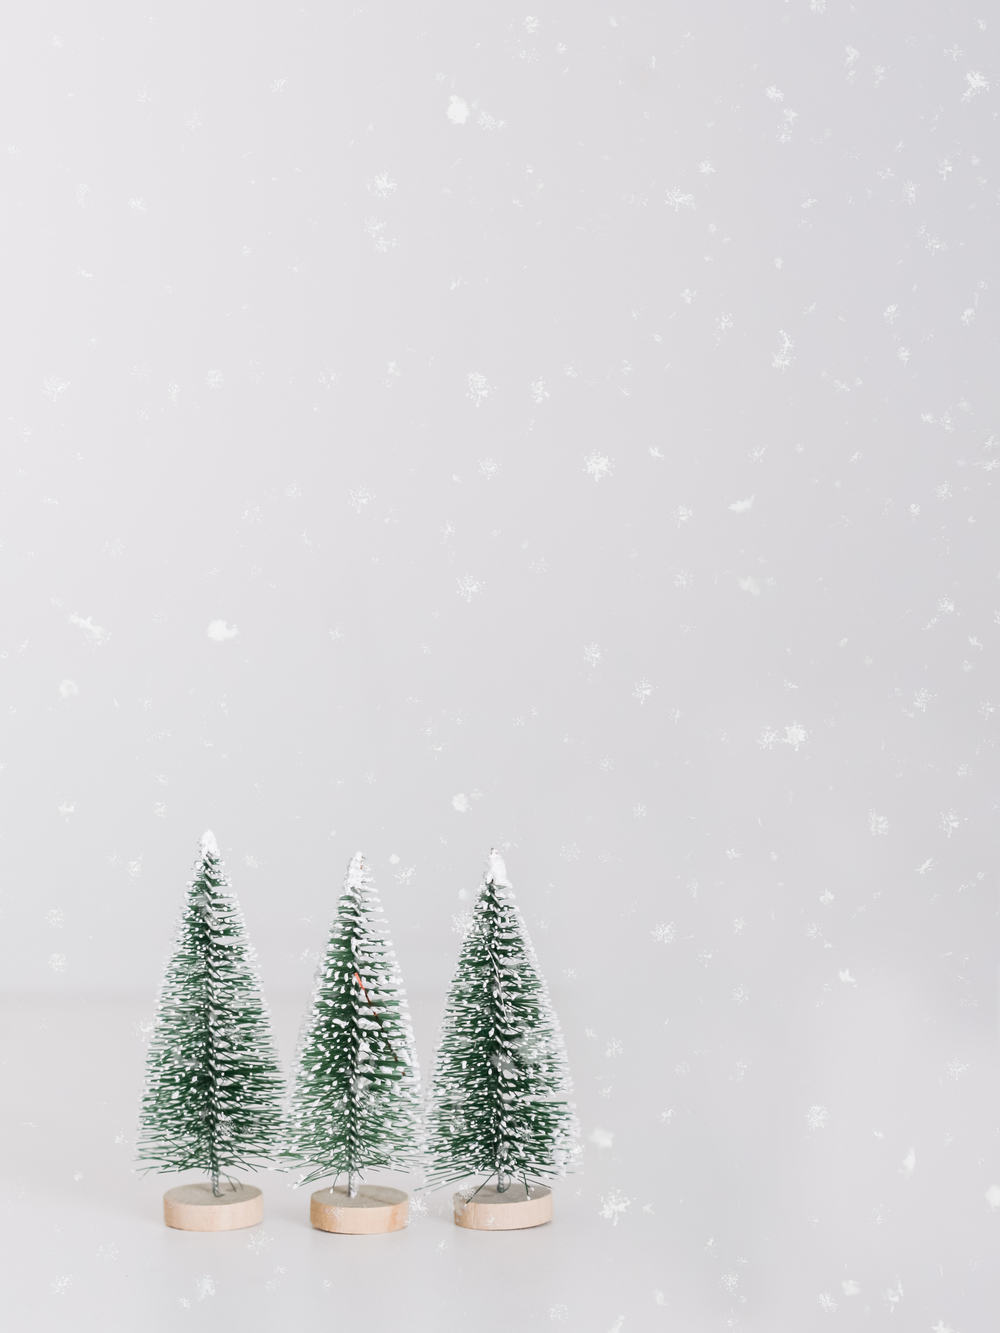 green pine trees under snowy weather